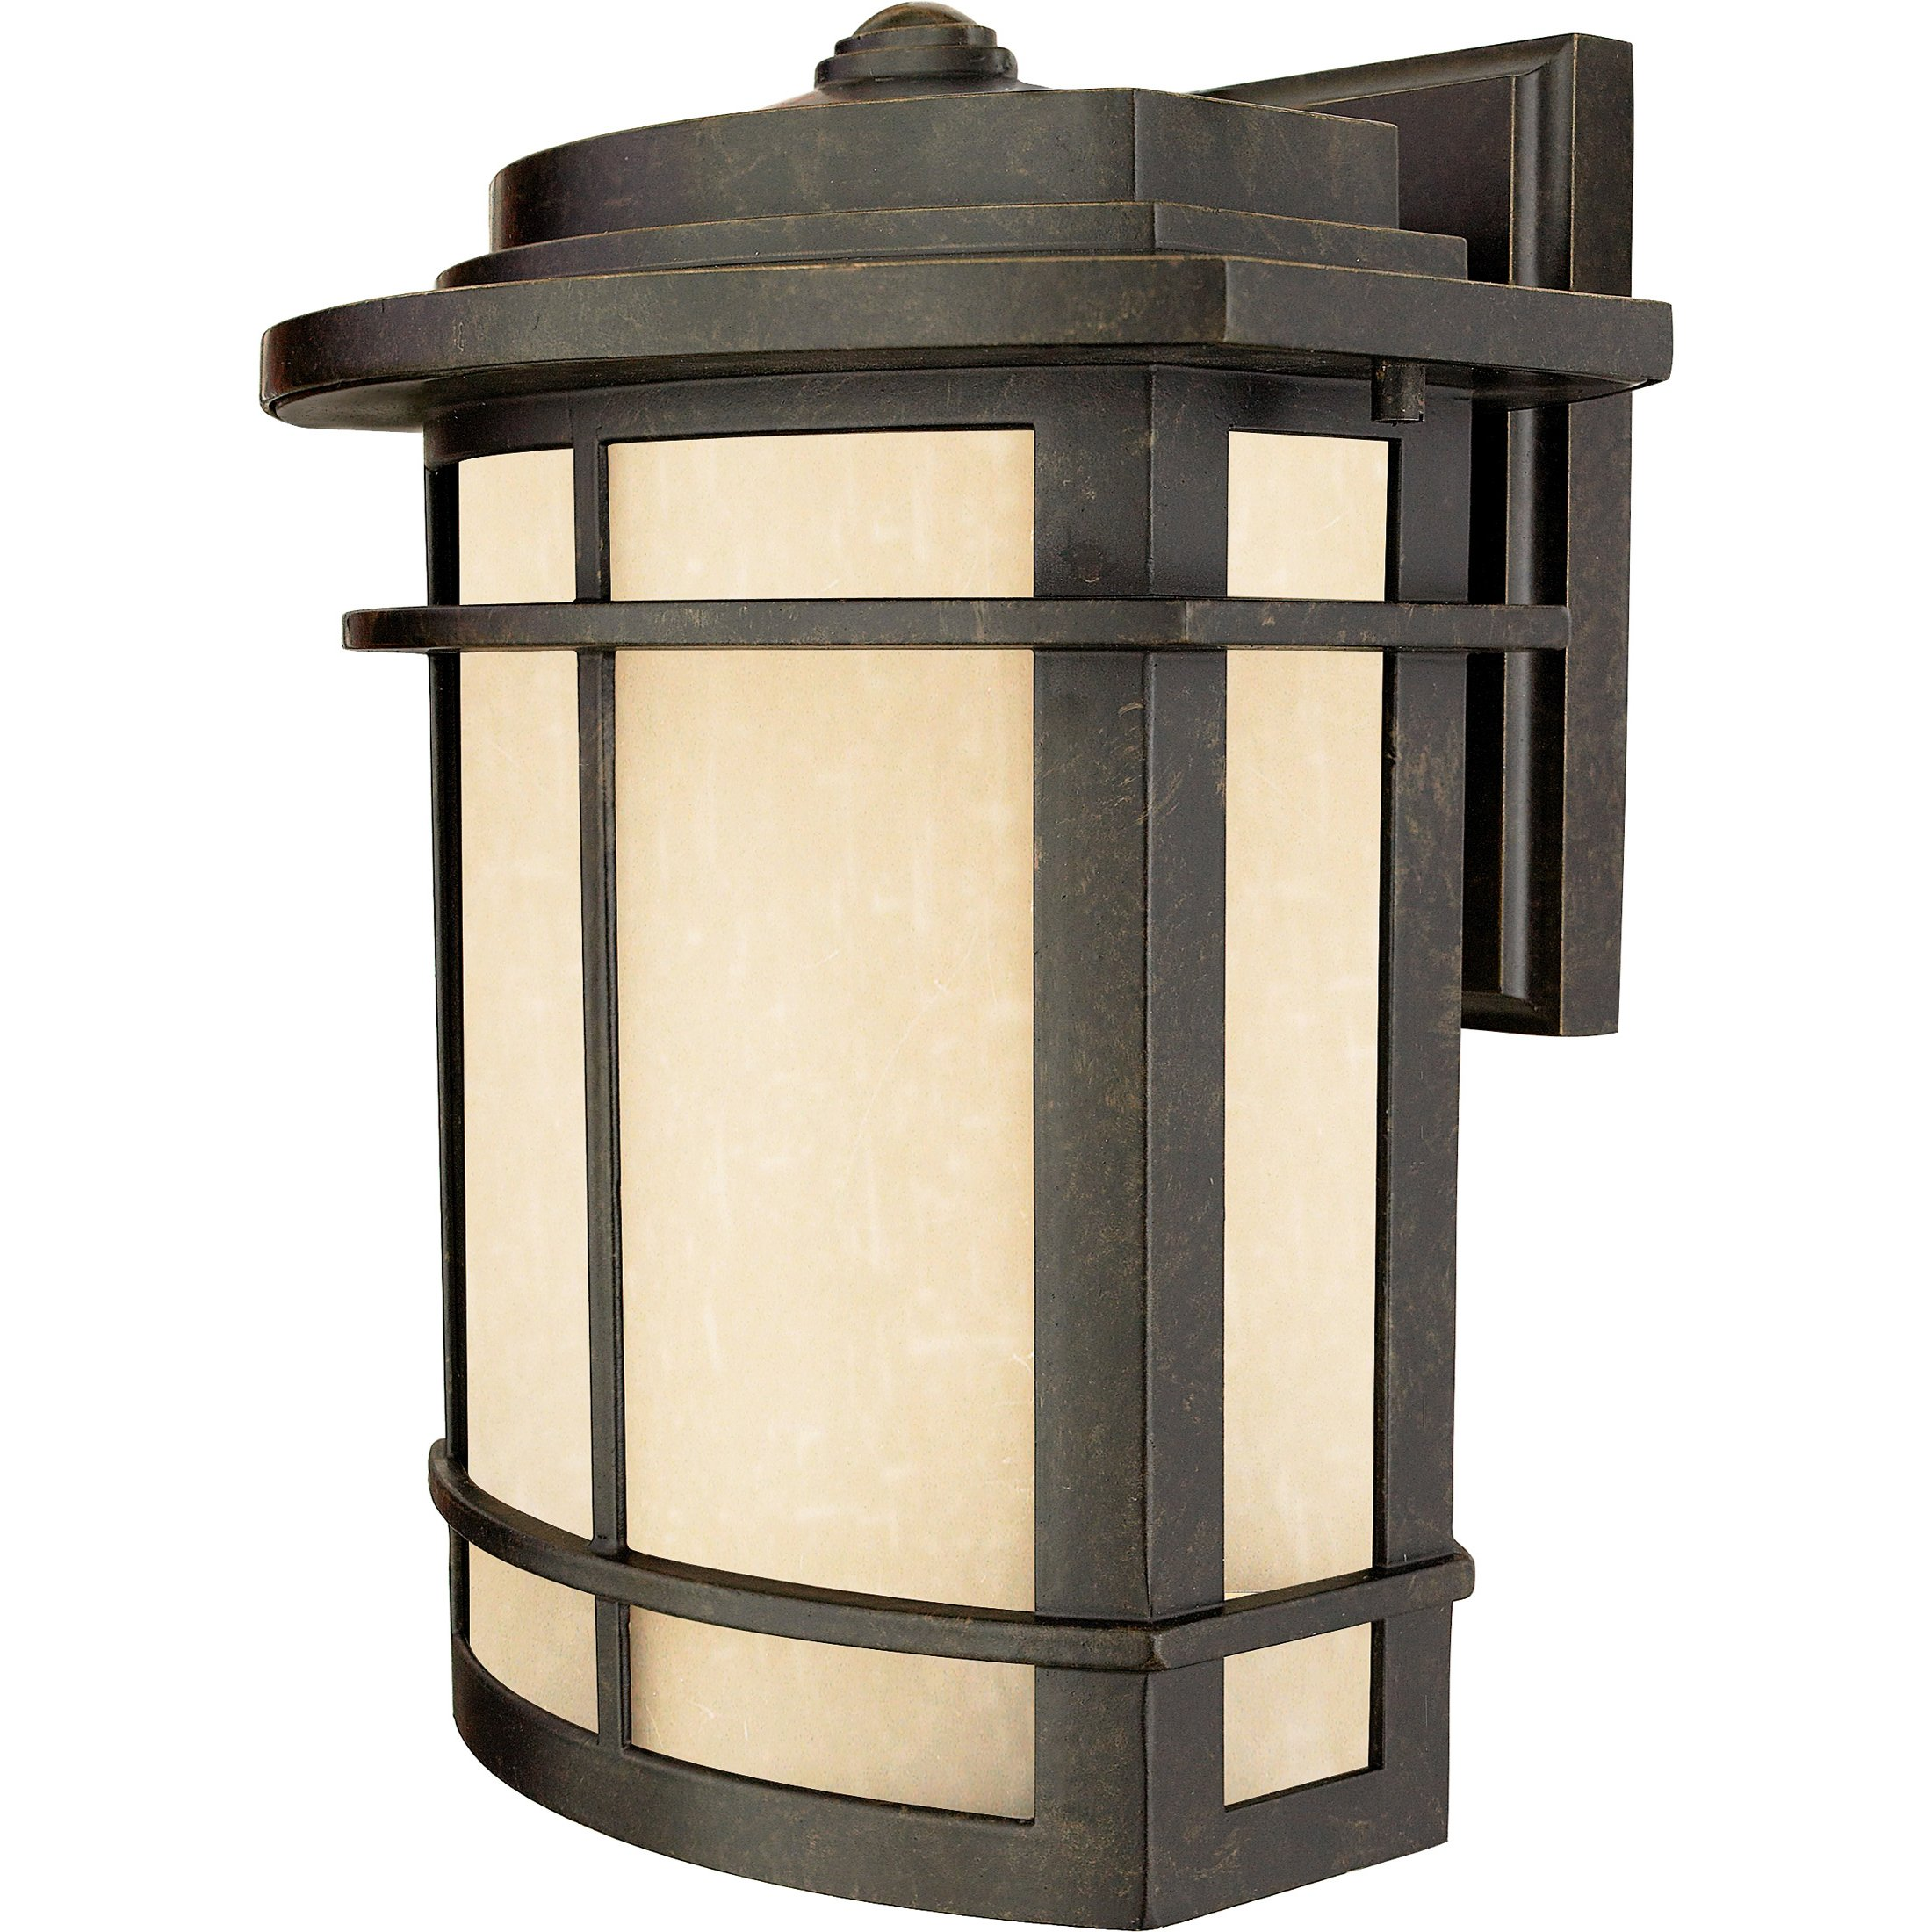 Quoizel GLN8410IB One Light Outdoor Wall Tabletop Lanterns Large Imperial Bronze